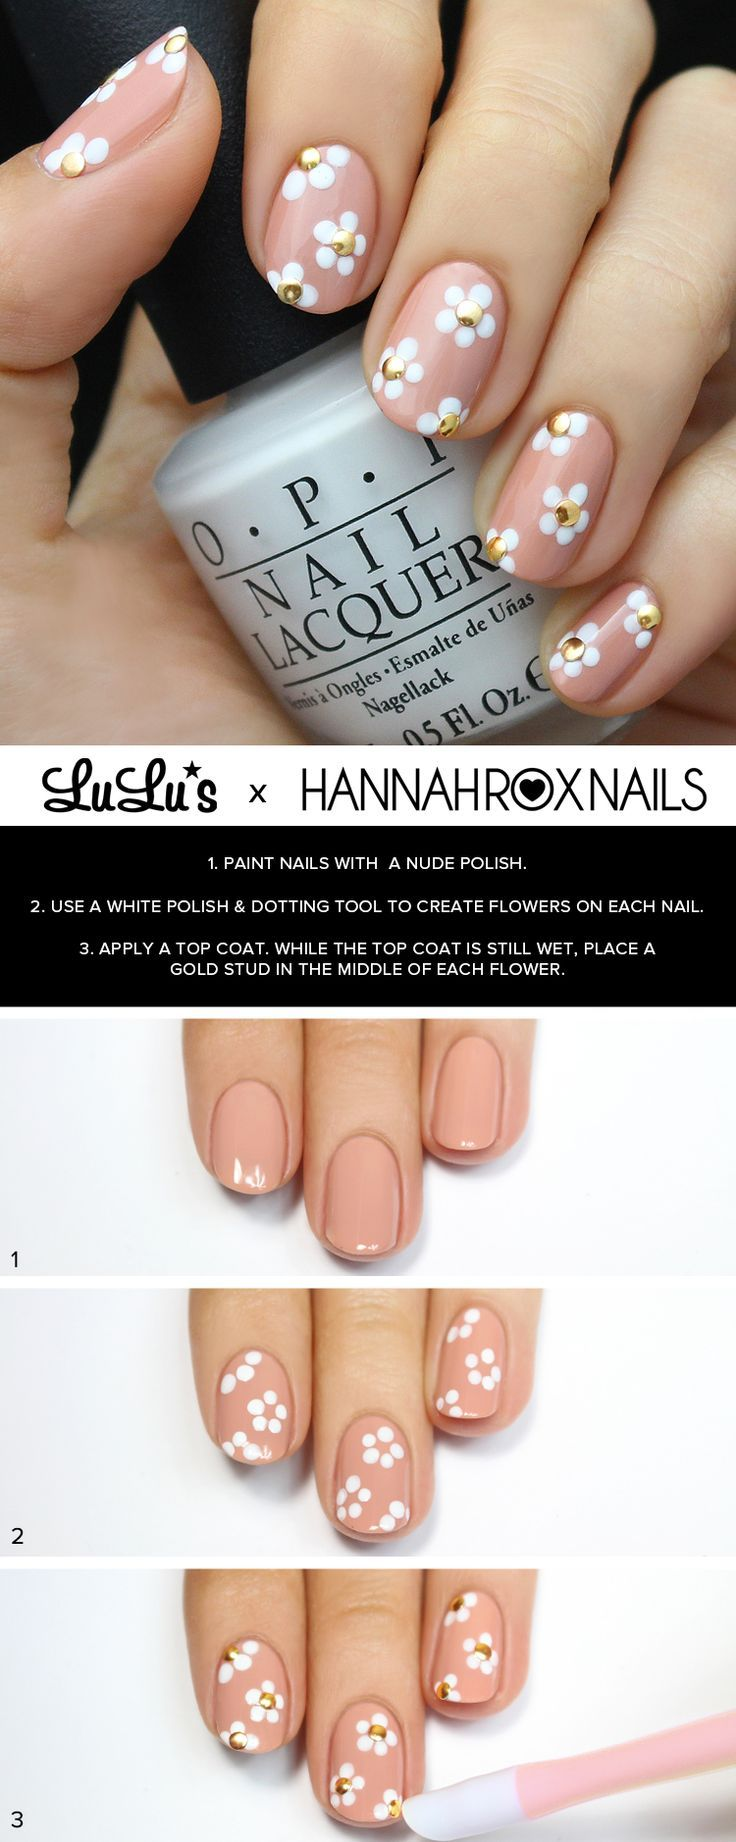 25 Simple Nail Art Tutorials For Beginners #nailart